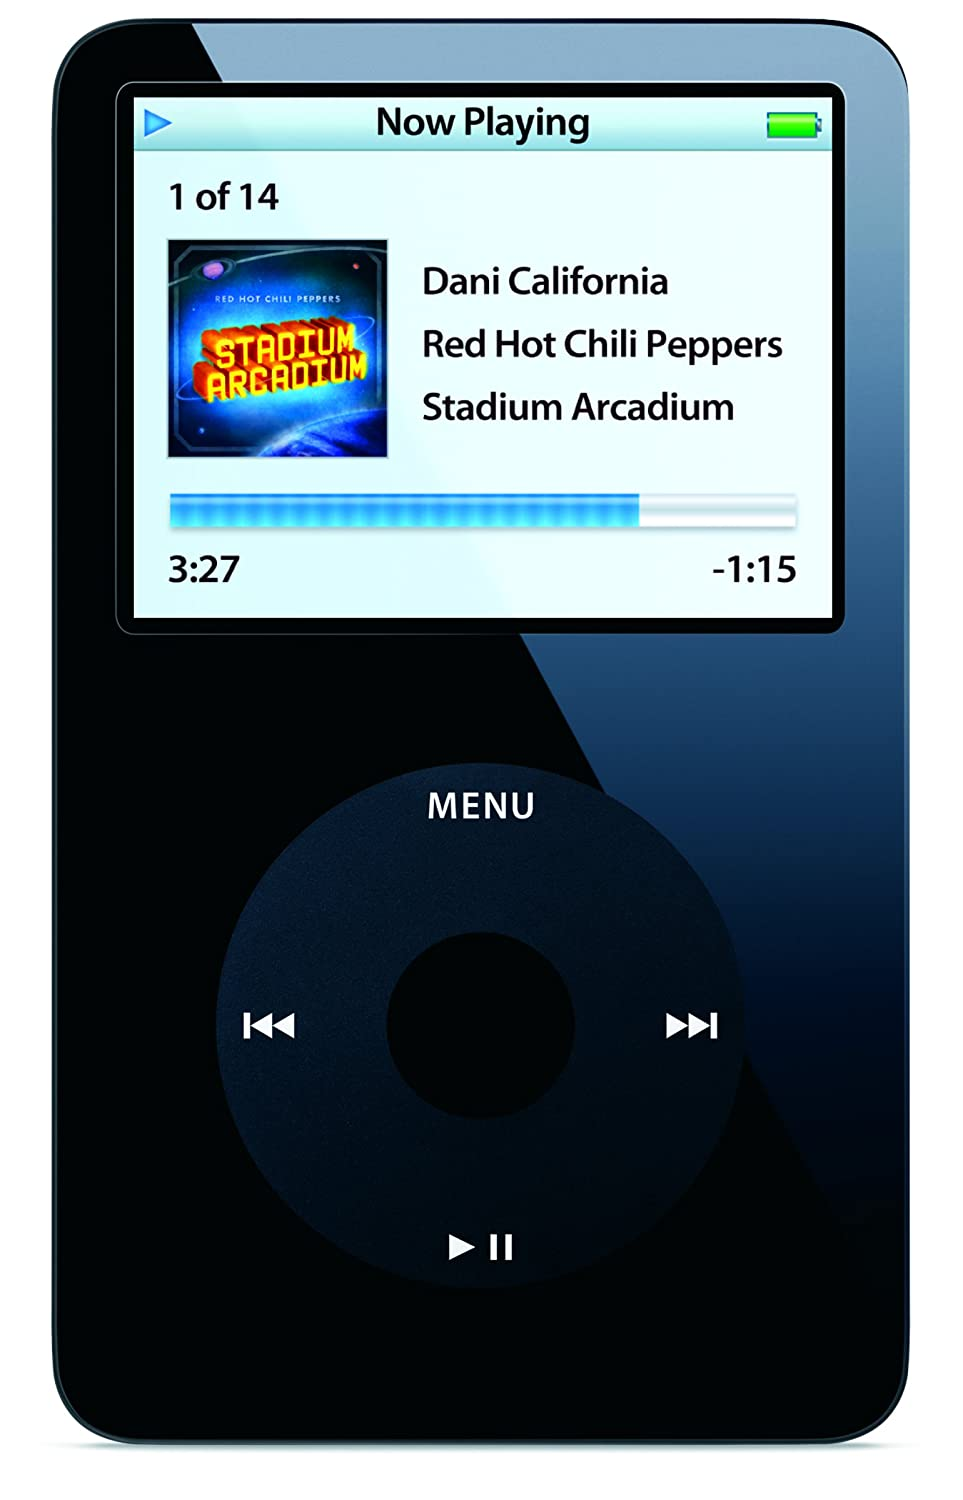 Amazon.com: Apple 80 GB iPod AAC/MP3 Video Player 5.5 Generation (Black)  (Discontinued by Manufacturer): Home Audio & Theater